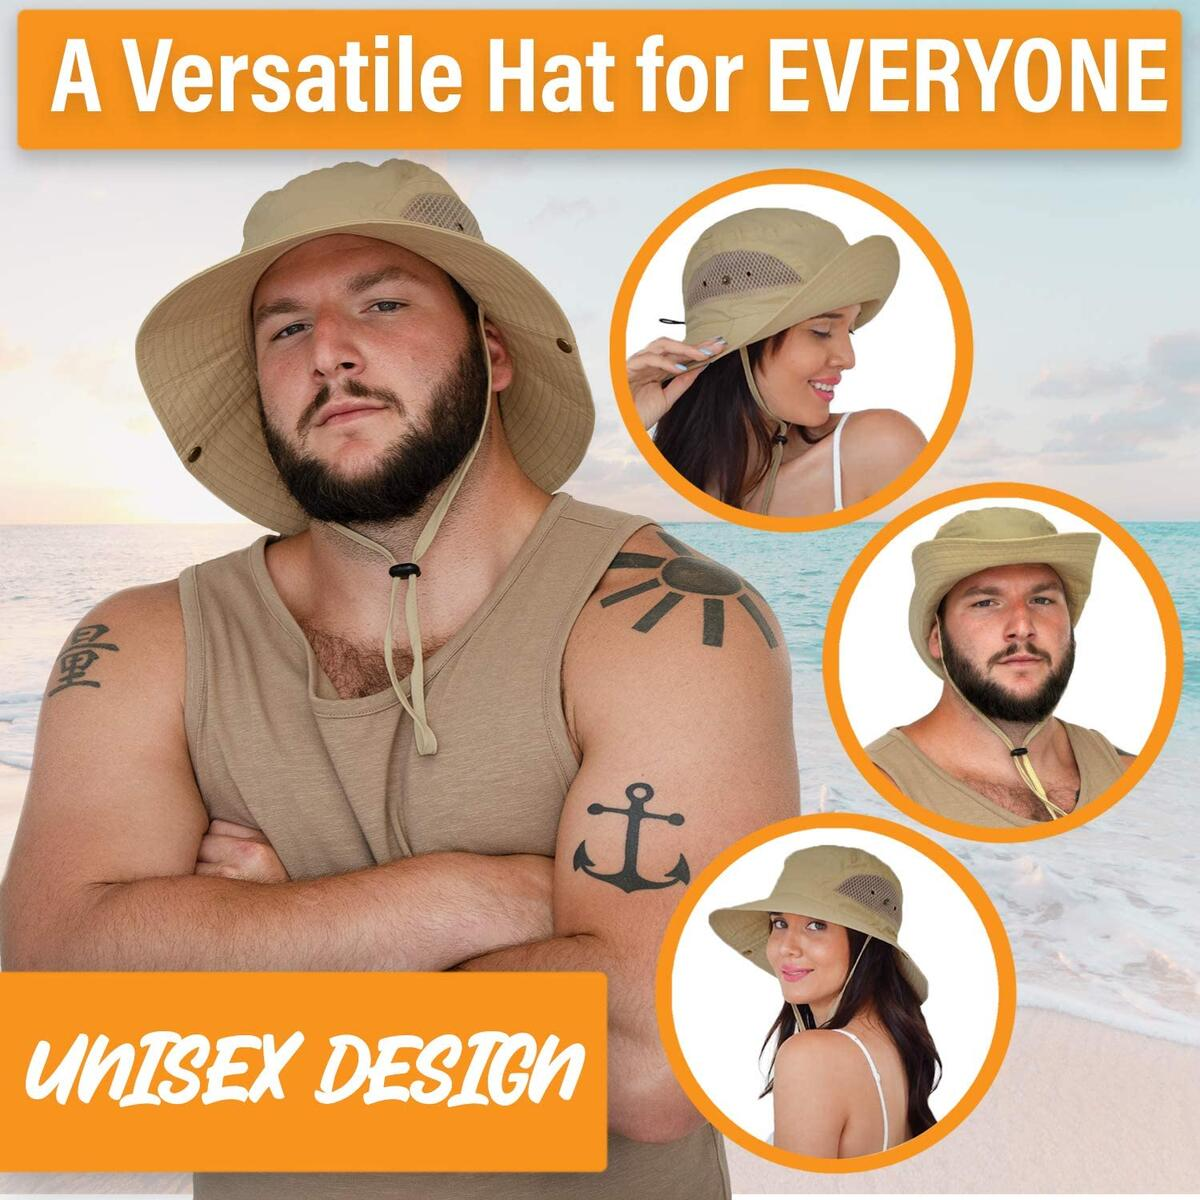 GearTOP Sun Bucket Hat - Floater Series (Khaki, Beige, Army Green Colors Available)